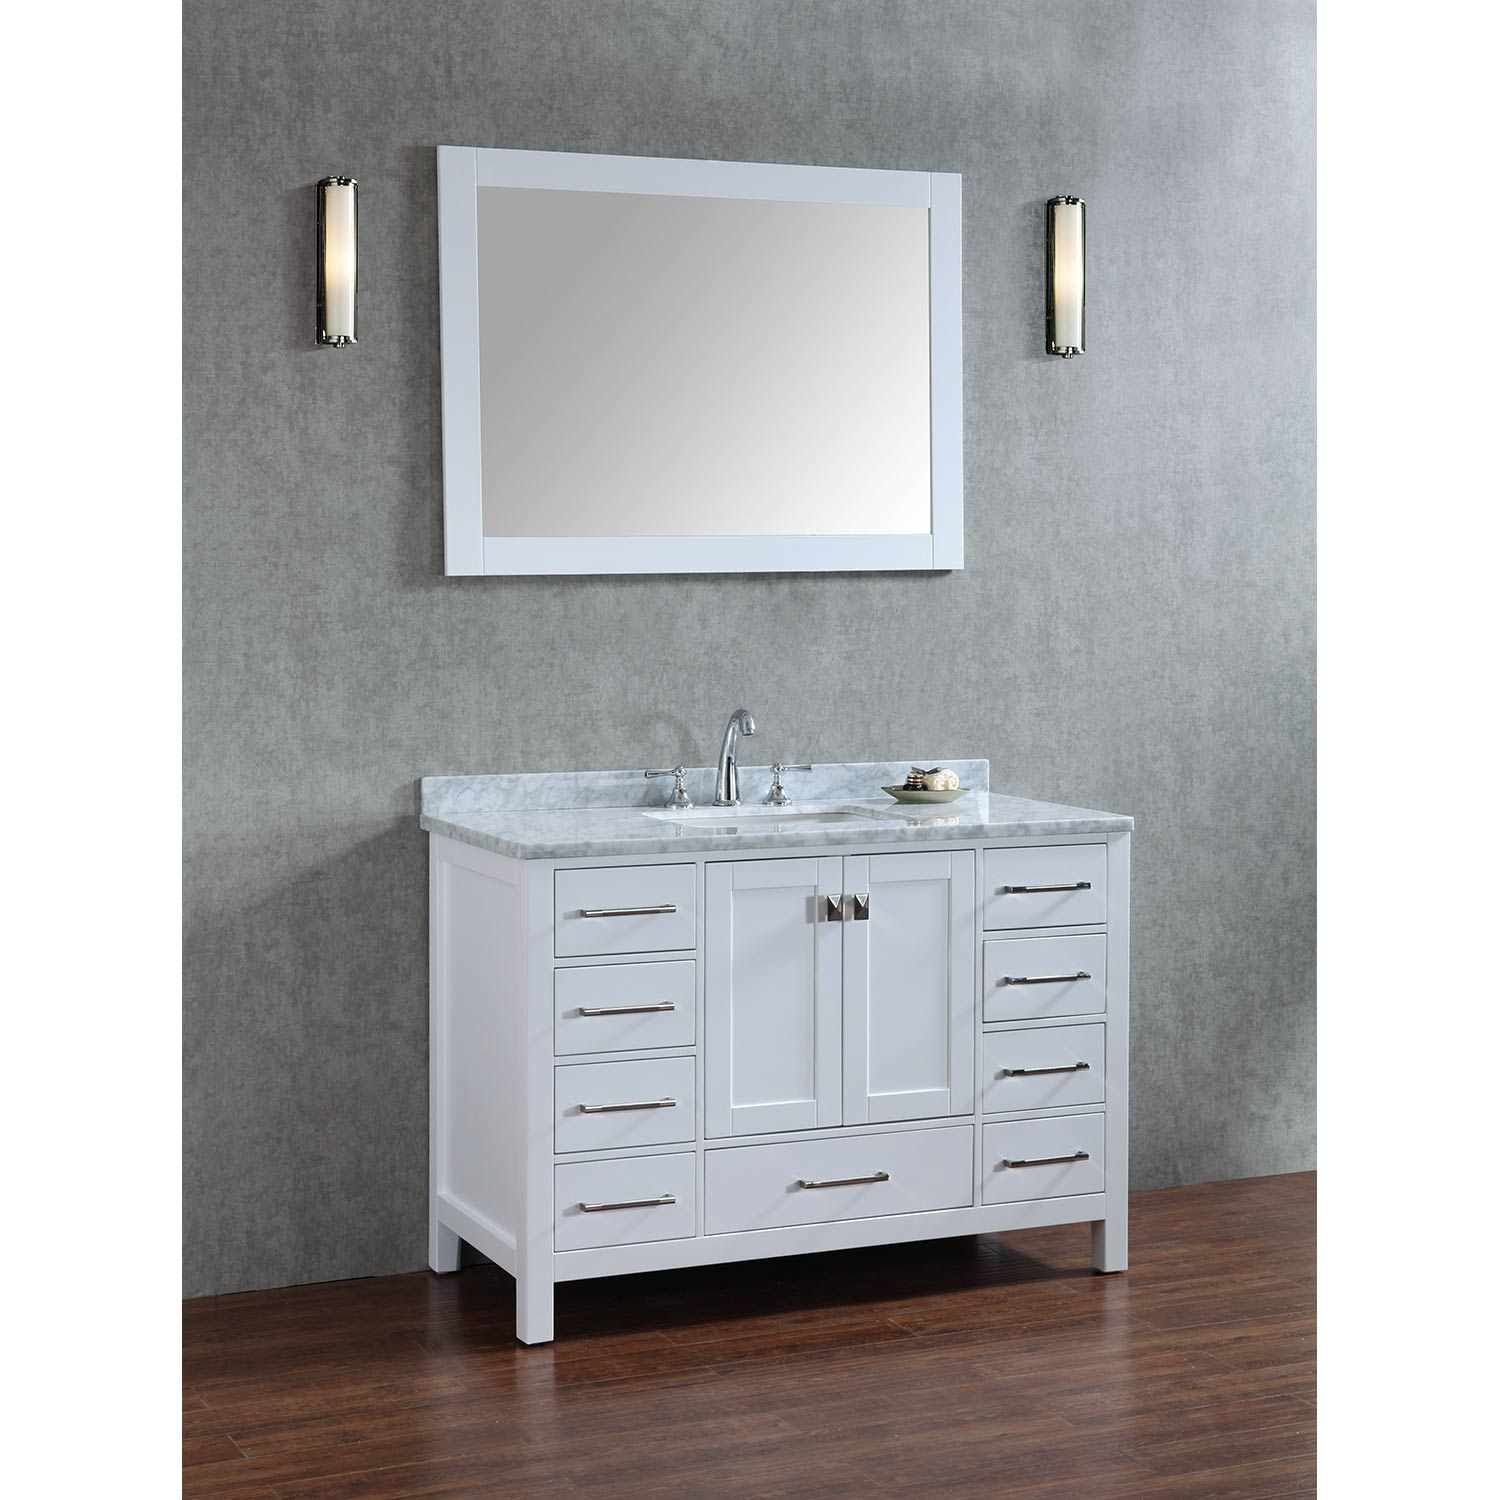 Buy vincent 48 inch solid wood single bathroom vanity in white hm 13001 48 wmsq wt Solid wood bathroom vanities cabinets